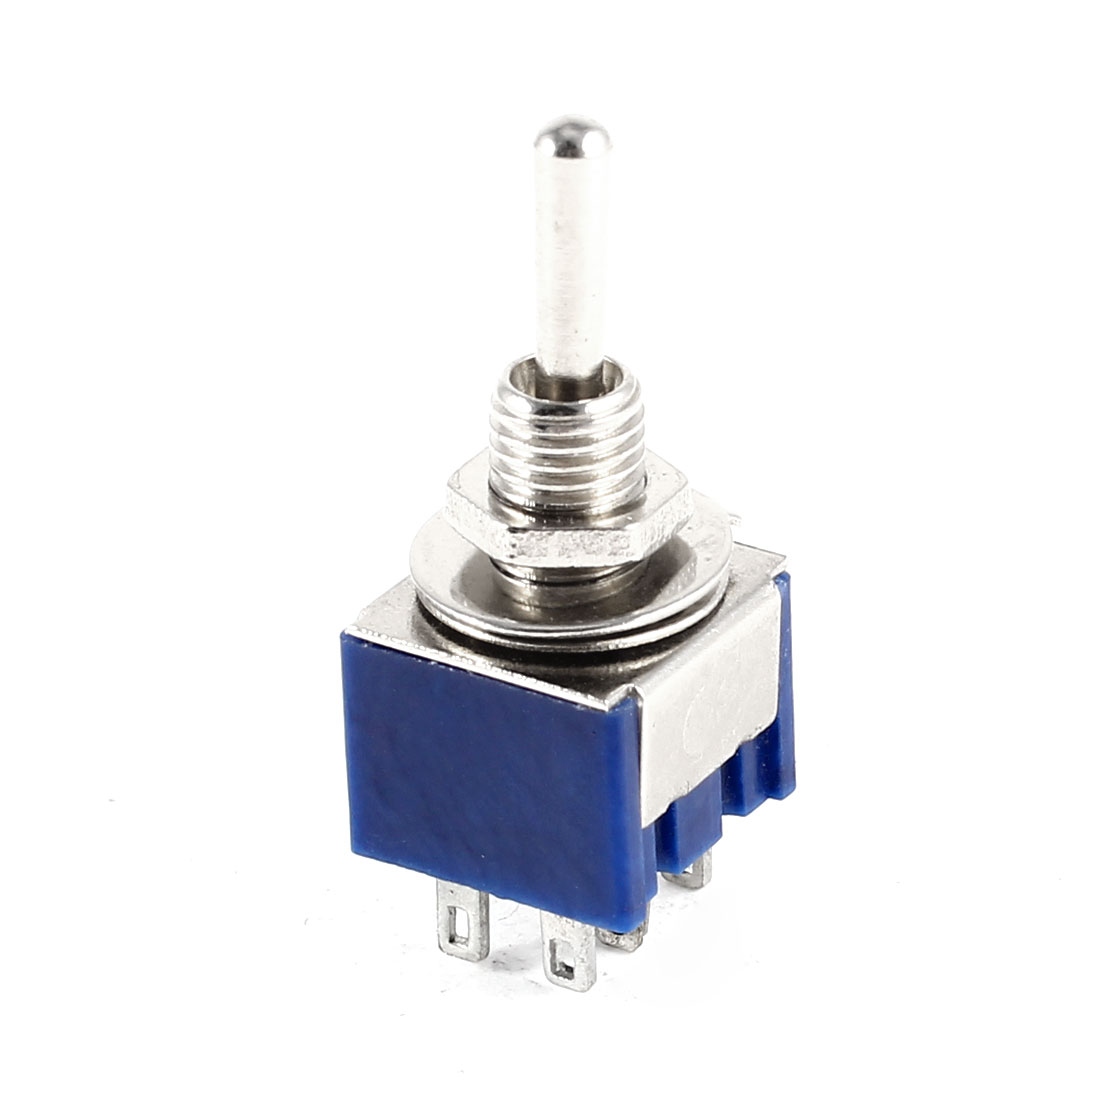 Blue PCB Mounting 6 Terminals ON-OFF-ON Mini Toggle Switch AC 125V 6A